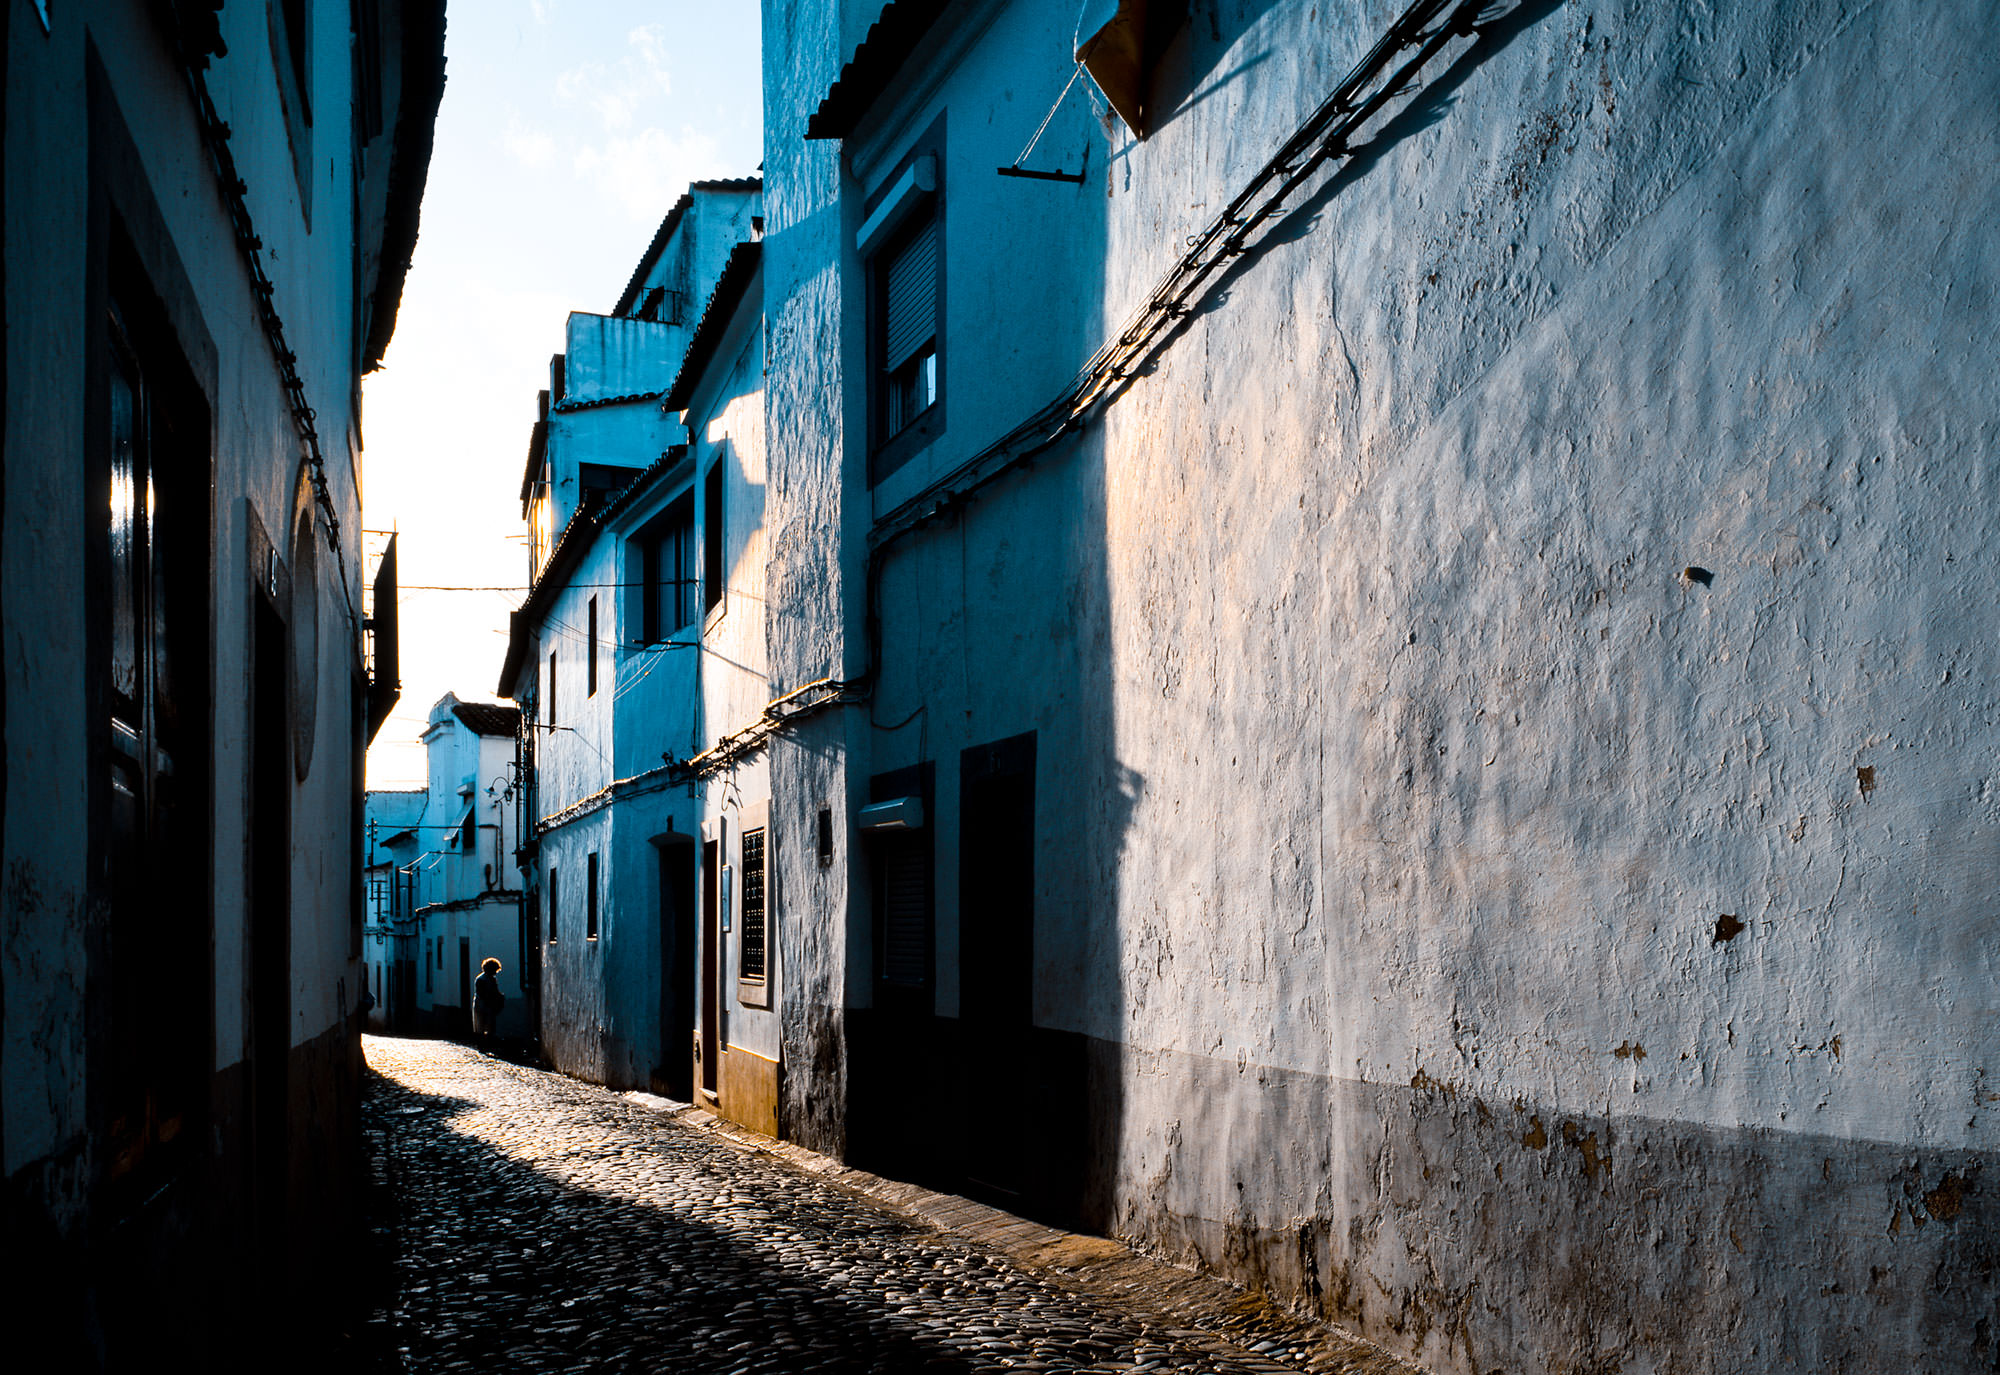 Photograph of Evora, Portugal in the early morning.  An old cobblestone alley.